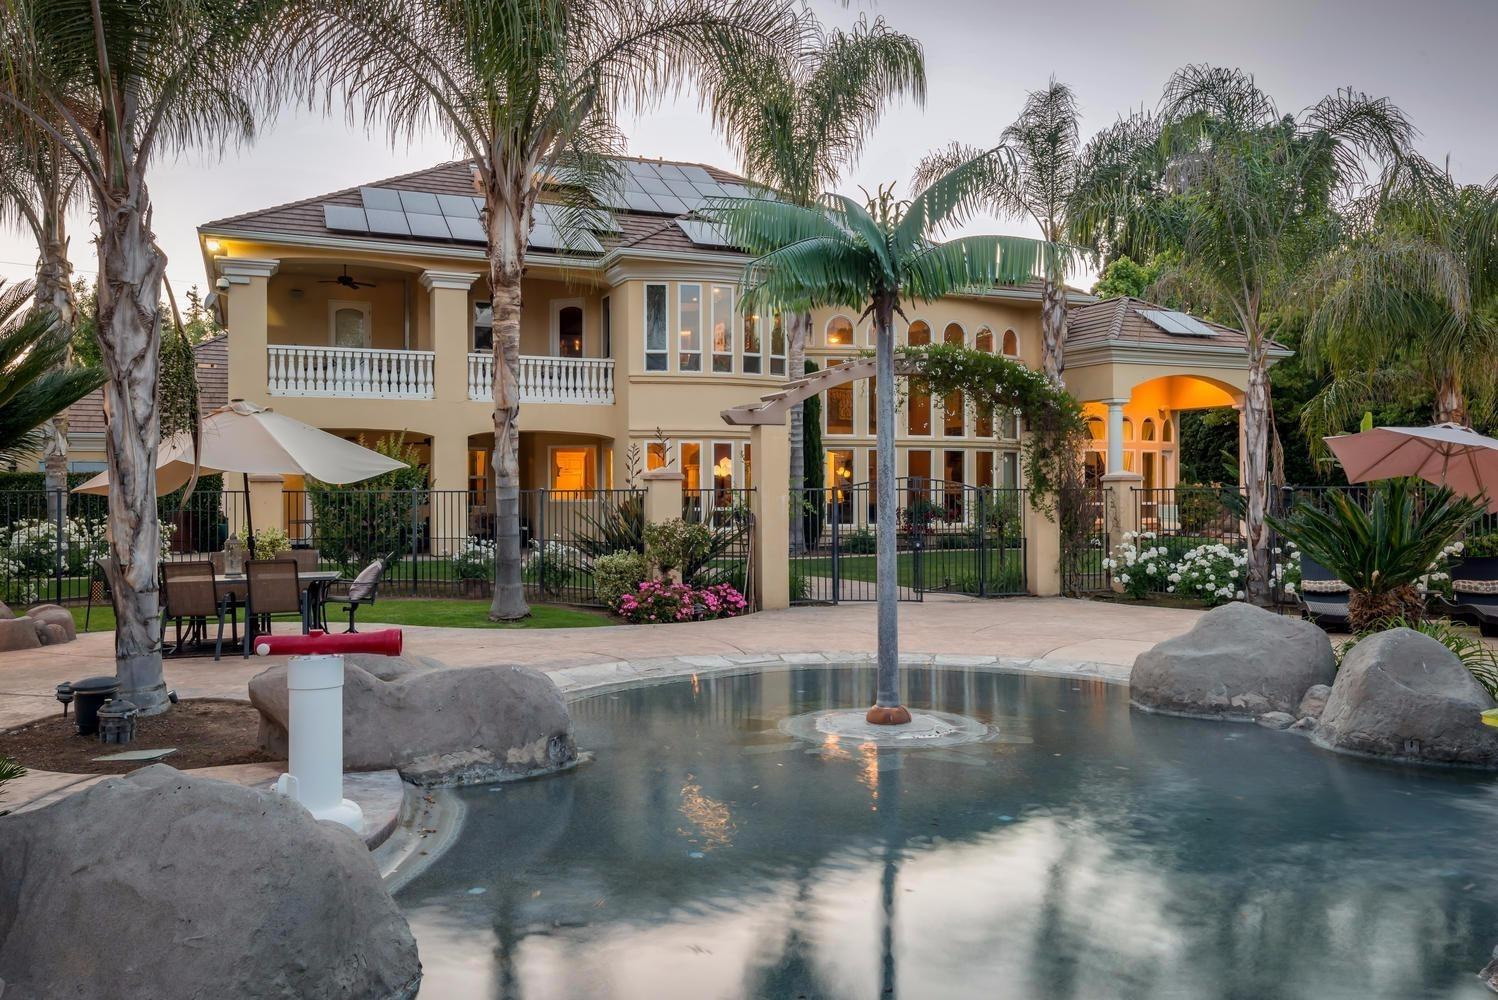 pros & cons of selling your home during the holidays - mansion and pool at dusk with palm trees, serene